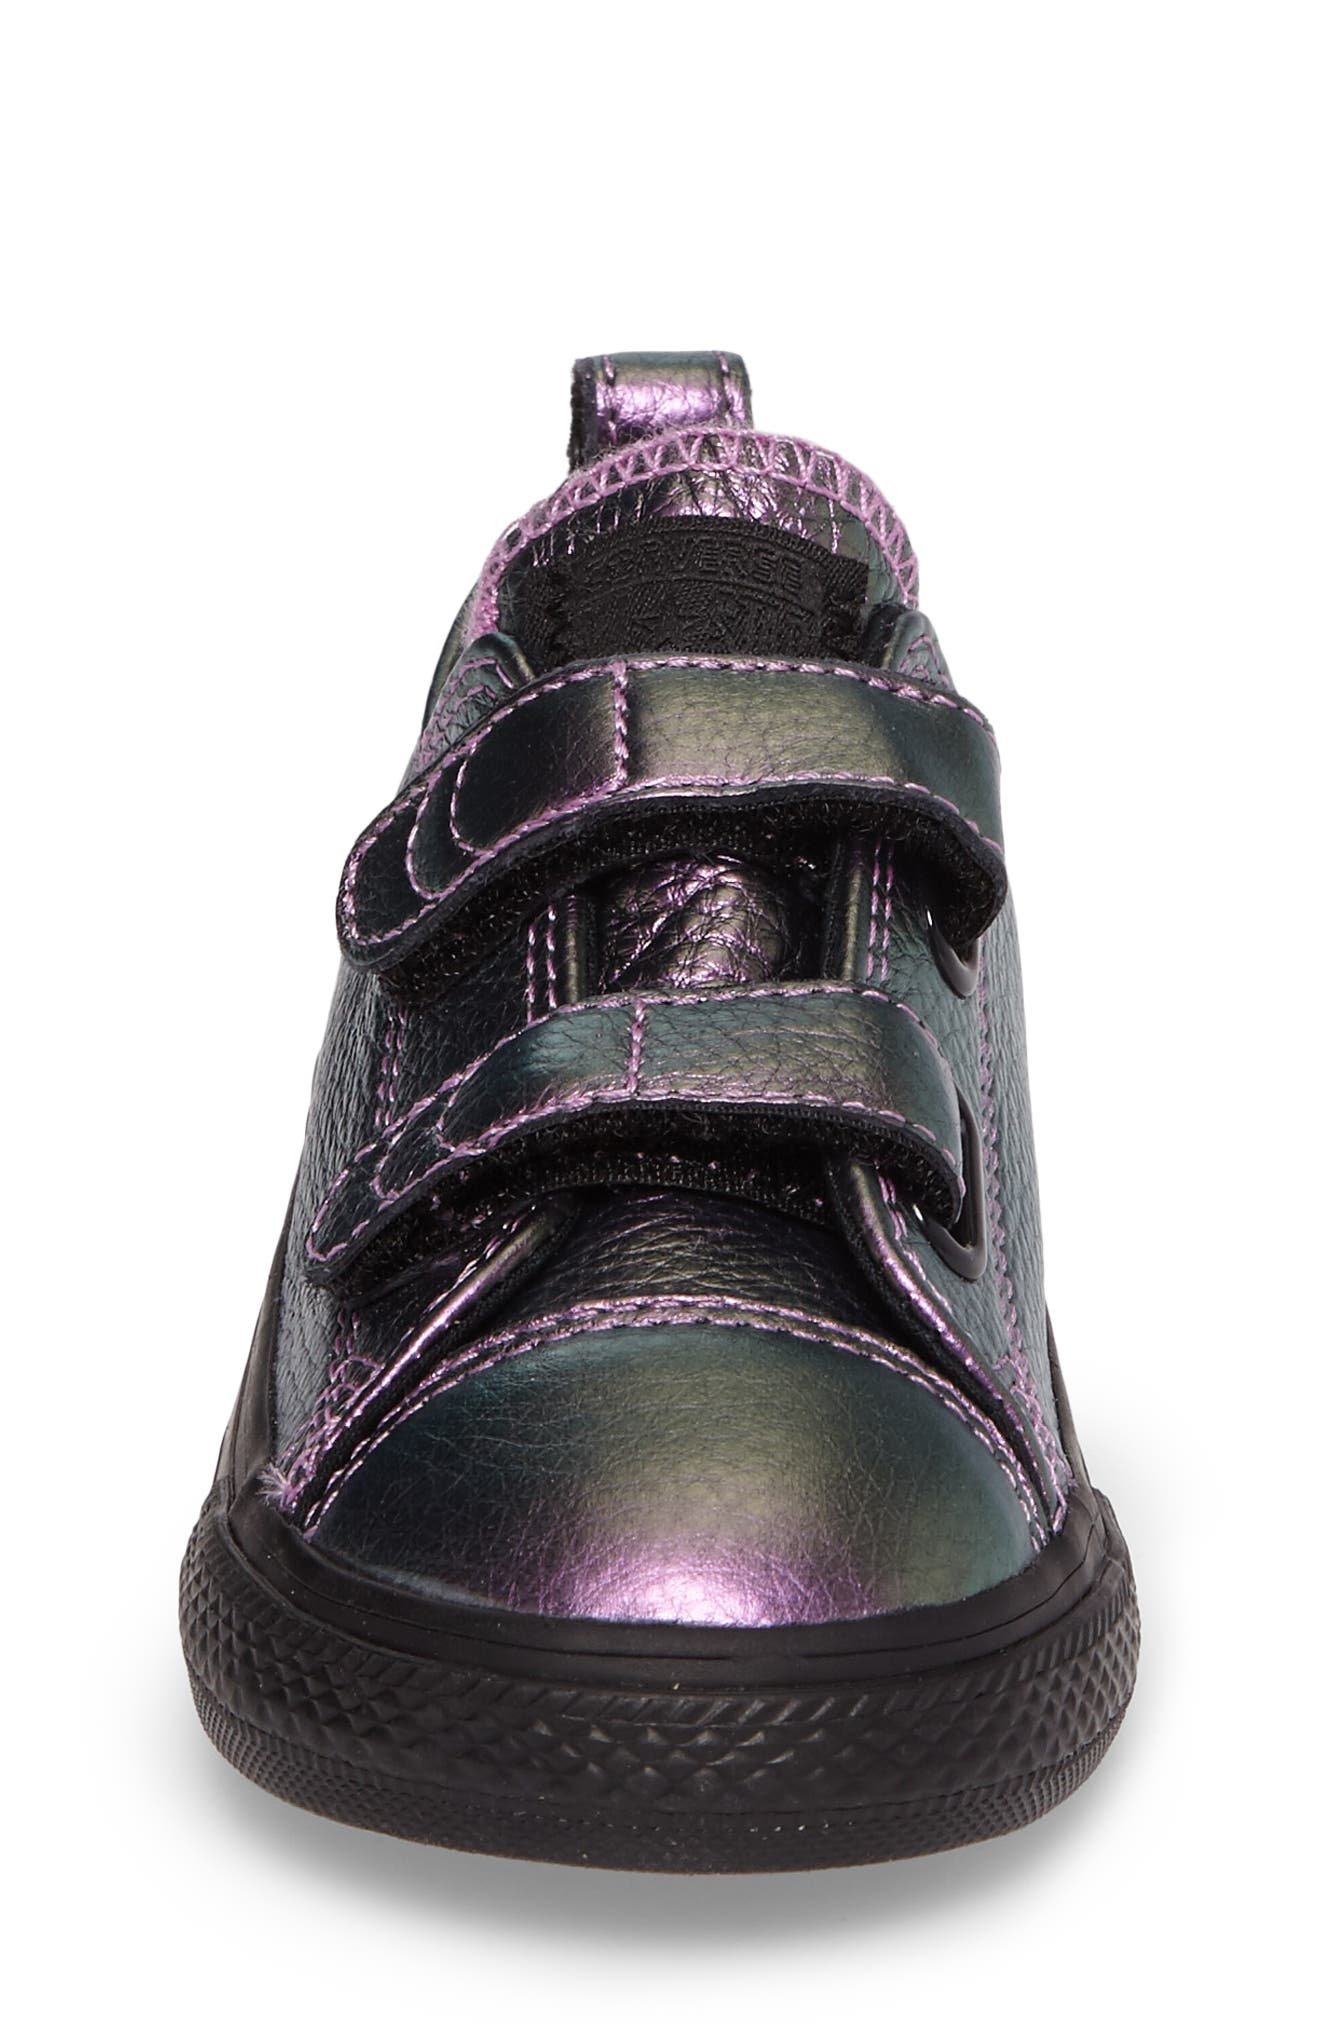 Chuck Taylor<sup>®</sup> All Star<sup>®</sup> Iridescent Leather Low Top Sneaker,                             Alternate thumbnail 4, color,                             500